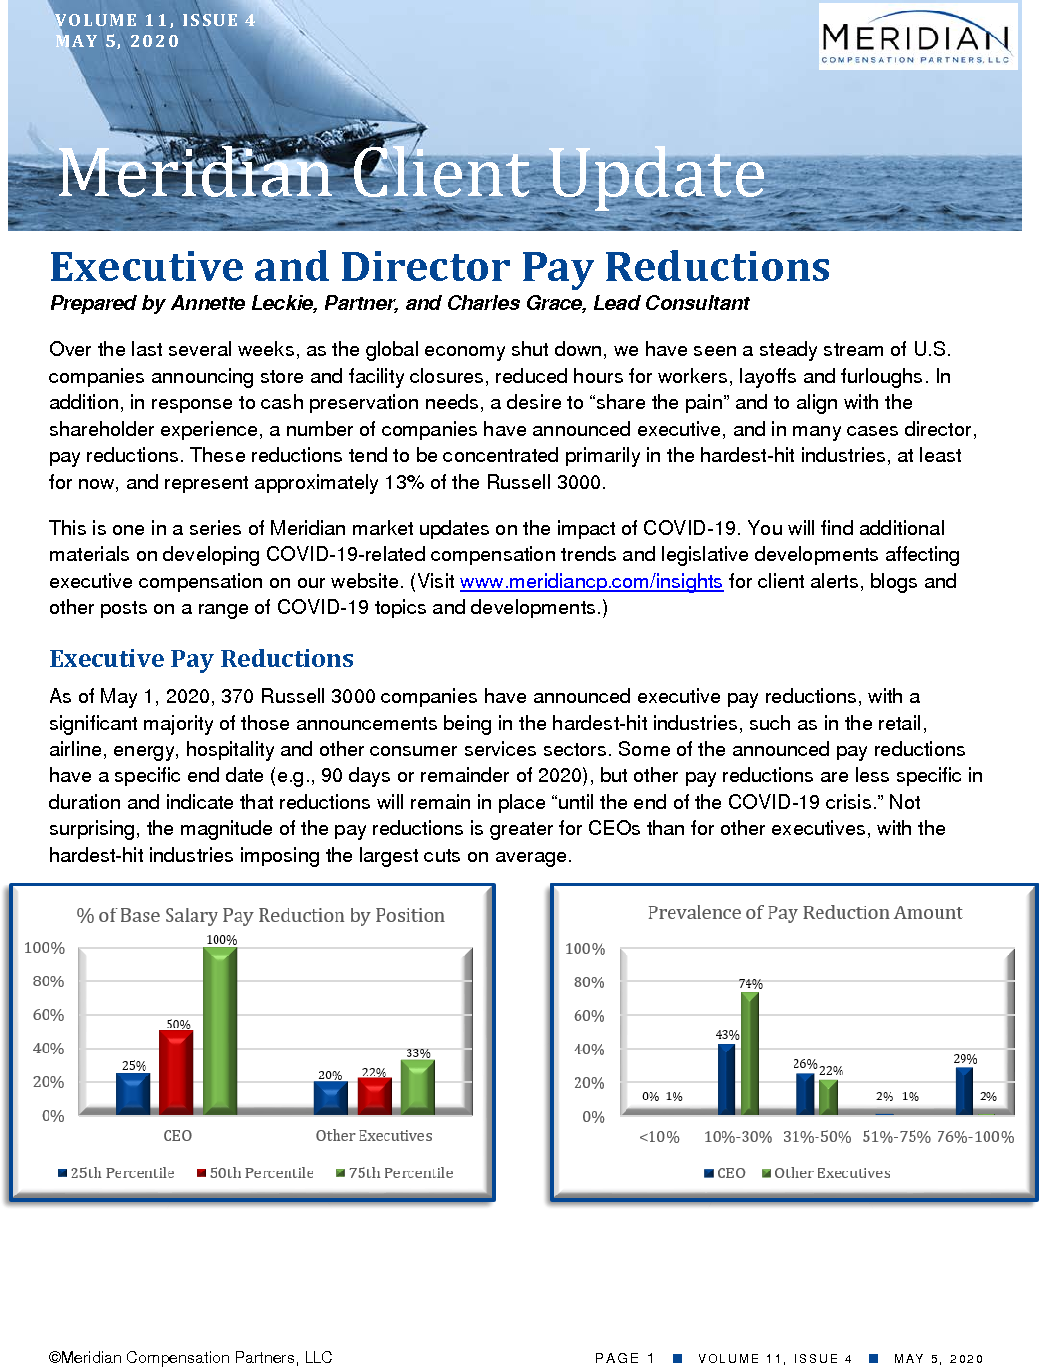 Executive and Director Pay Reductions (PDF)